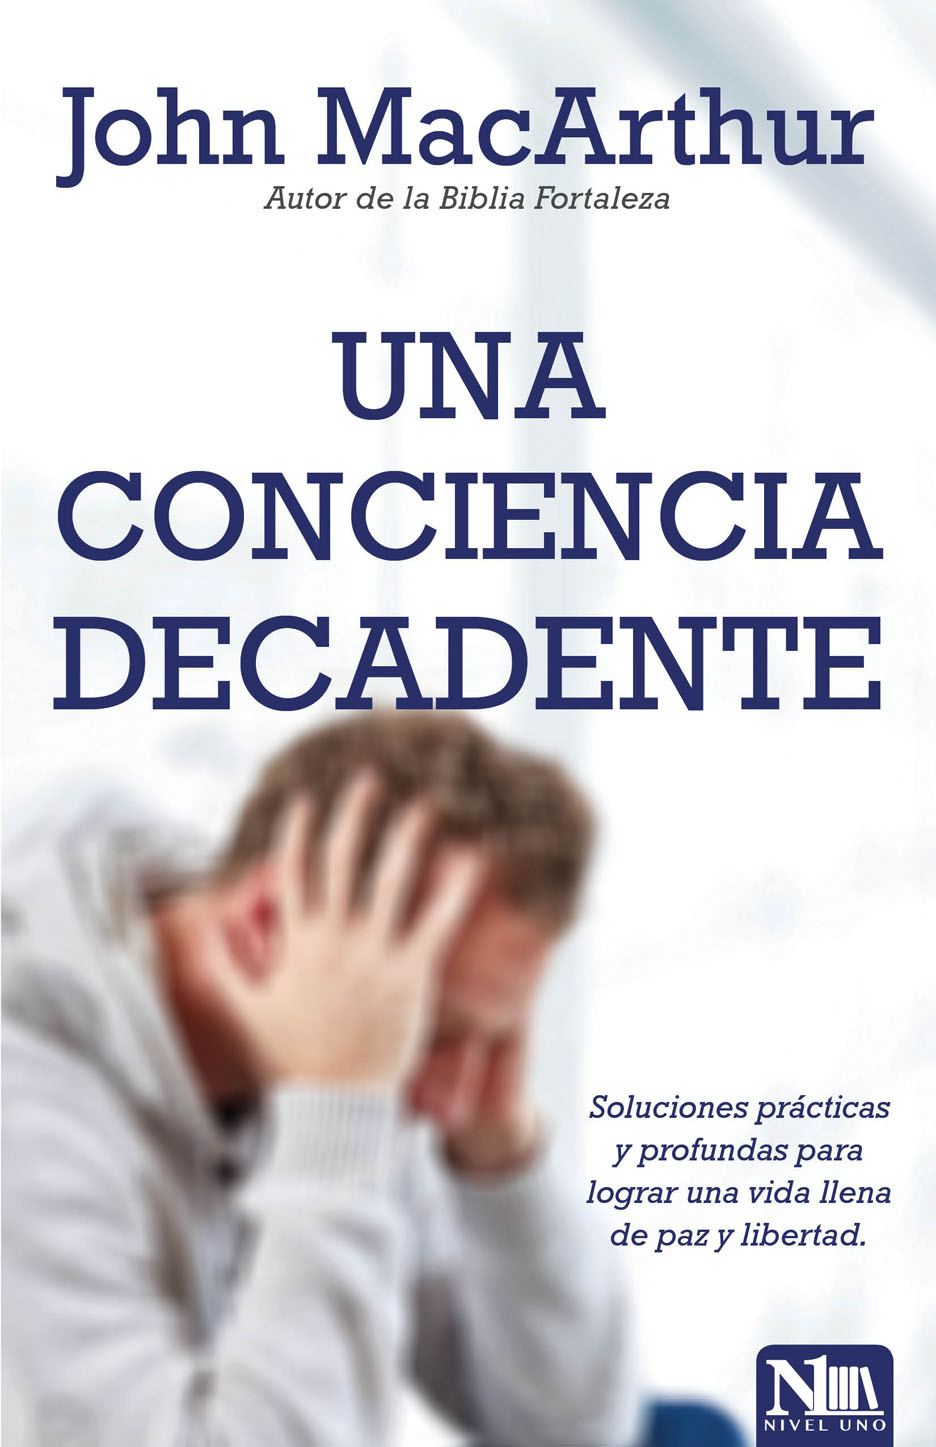 Una conciencia decadente